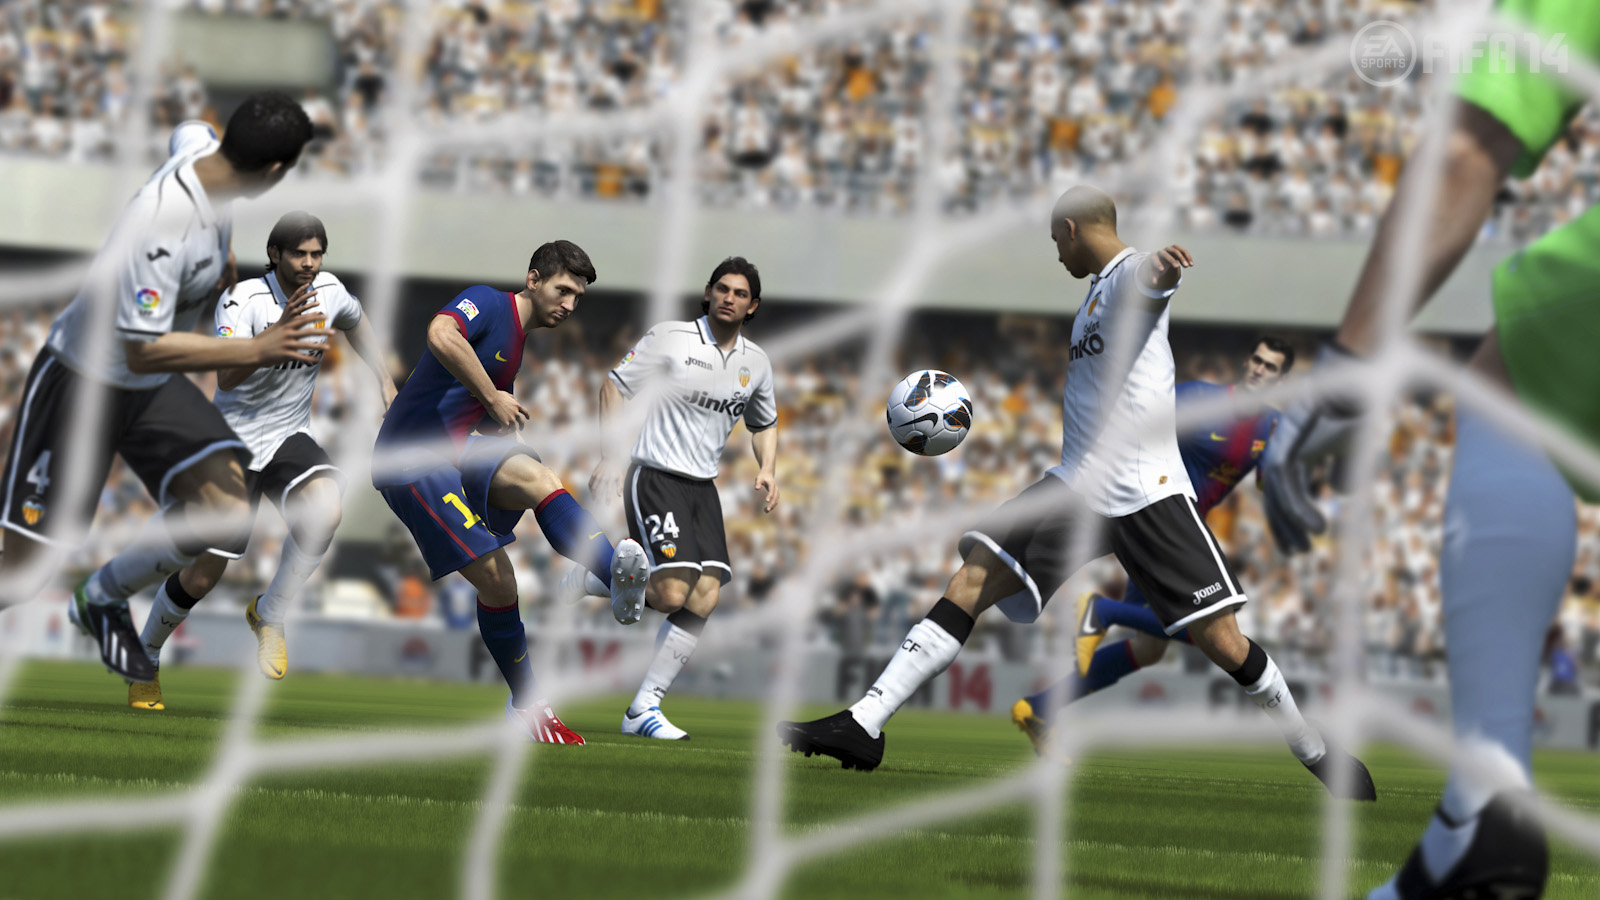 fifa14-sp-pure-shot